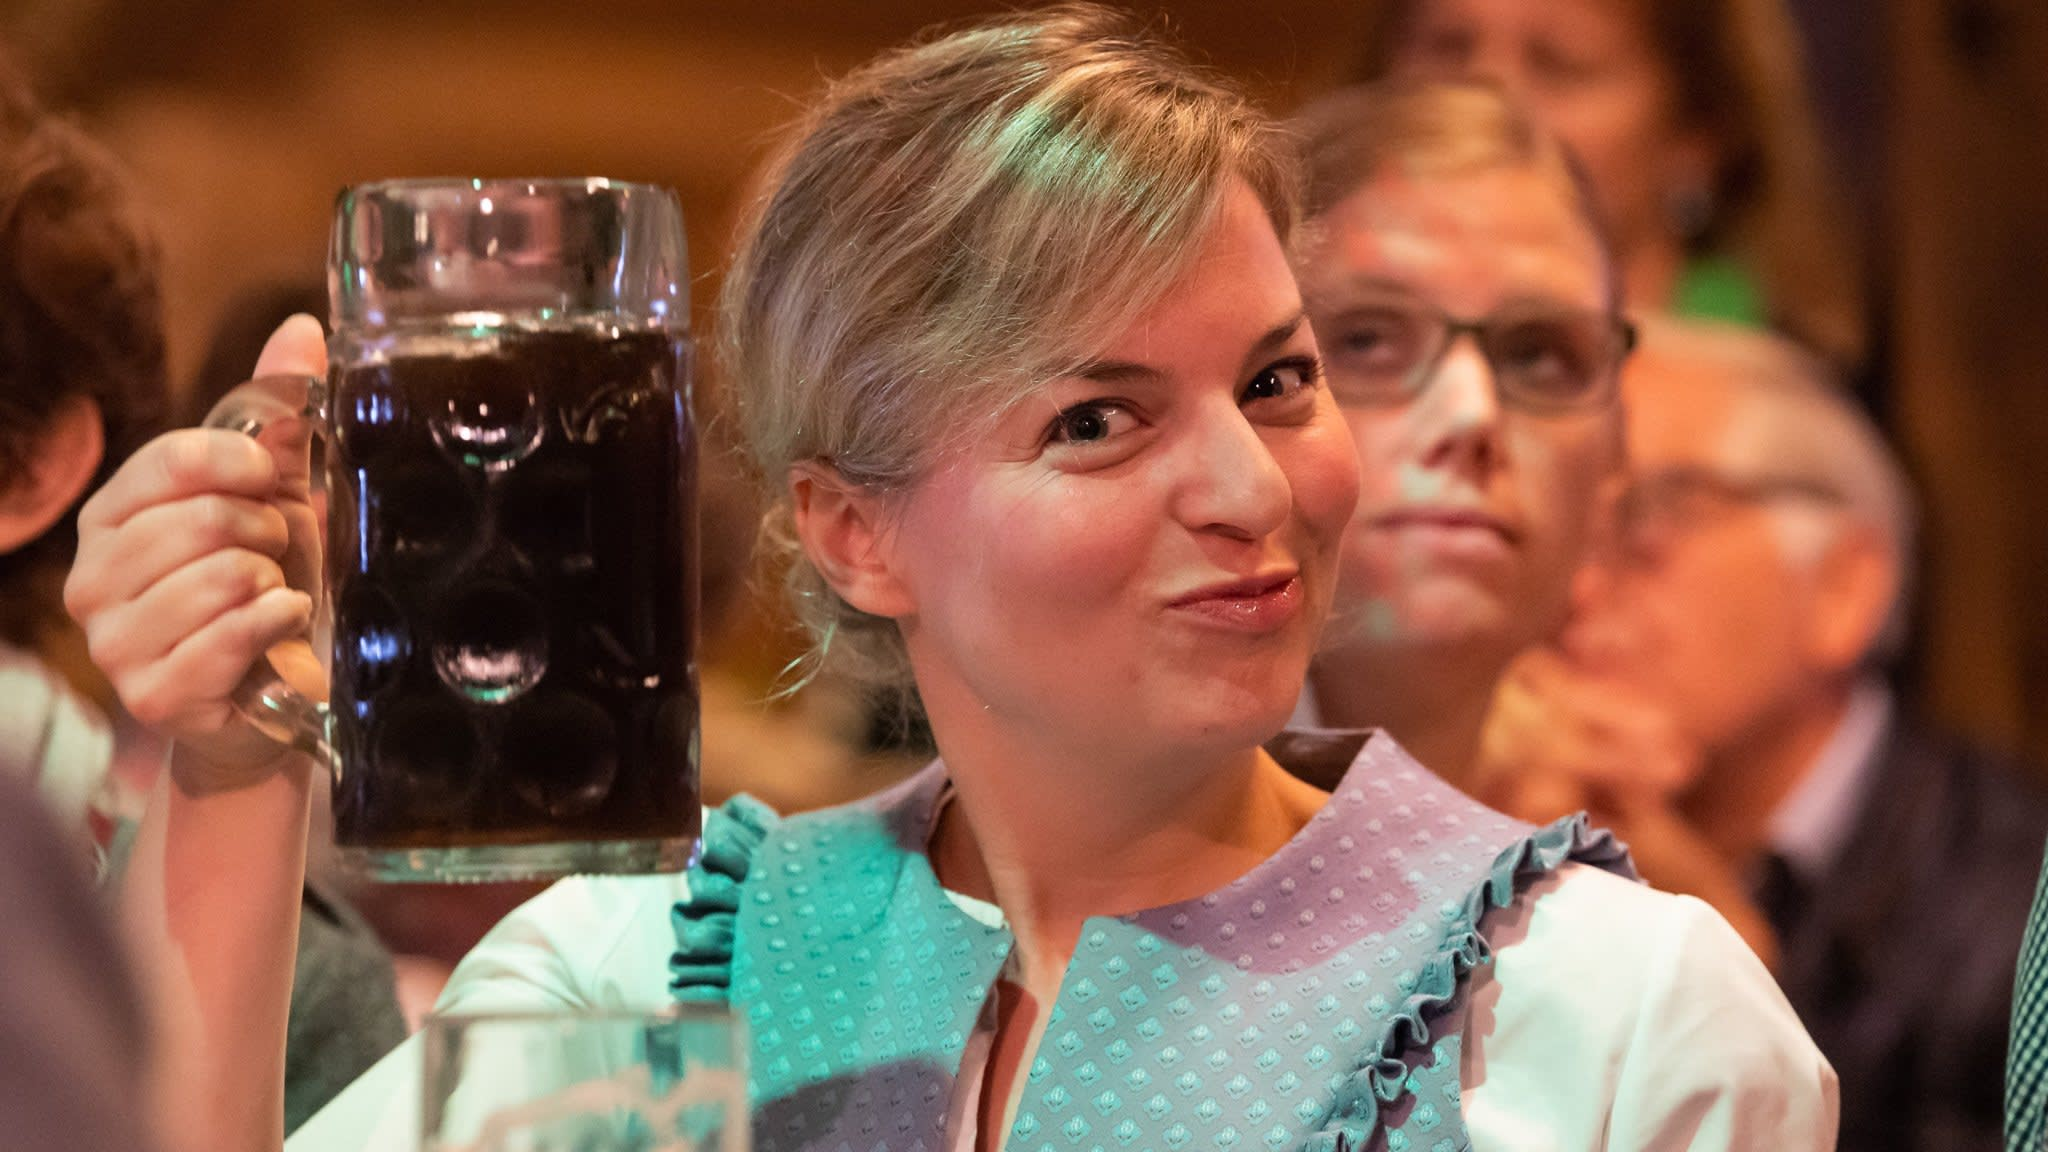 Beer-loving Bavaria falls for Green party cocktail